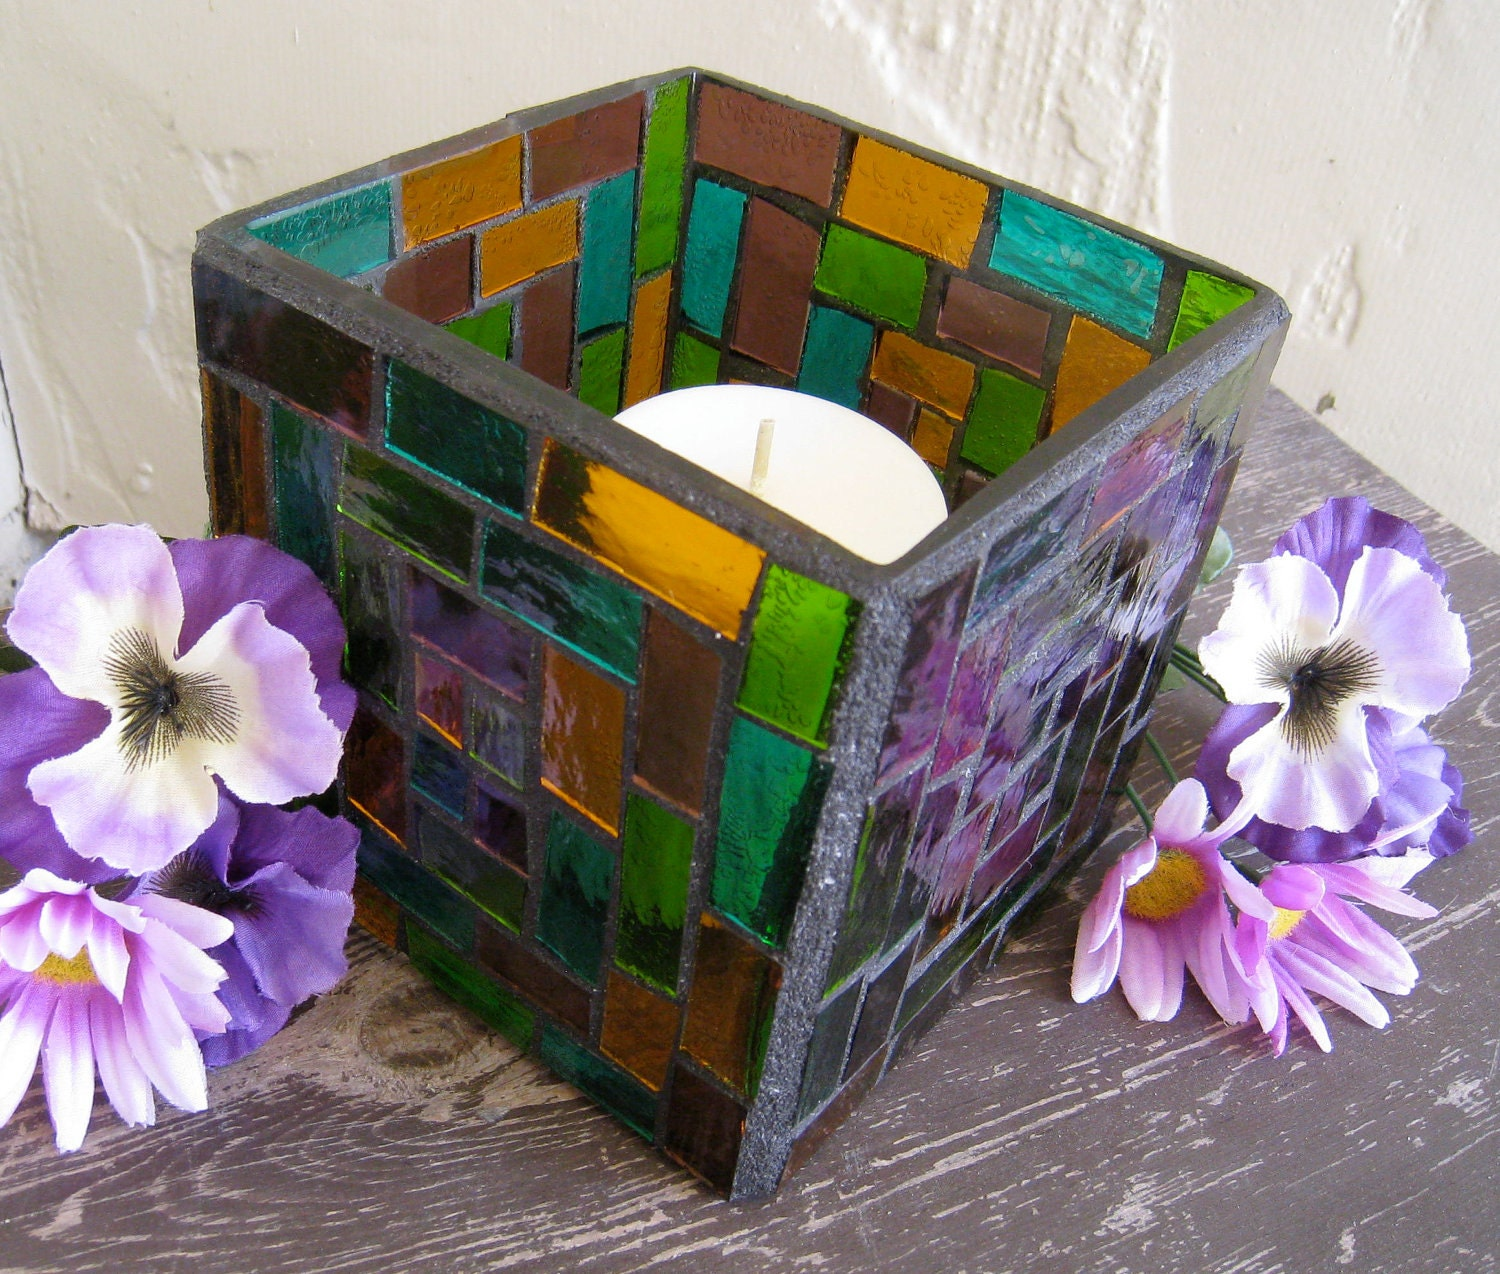 Mosaic Square Stained Glass Vase Or Candle Holder